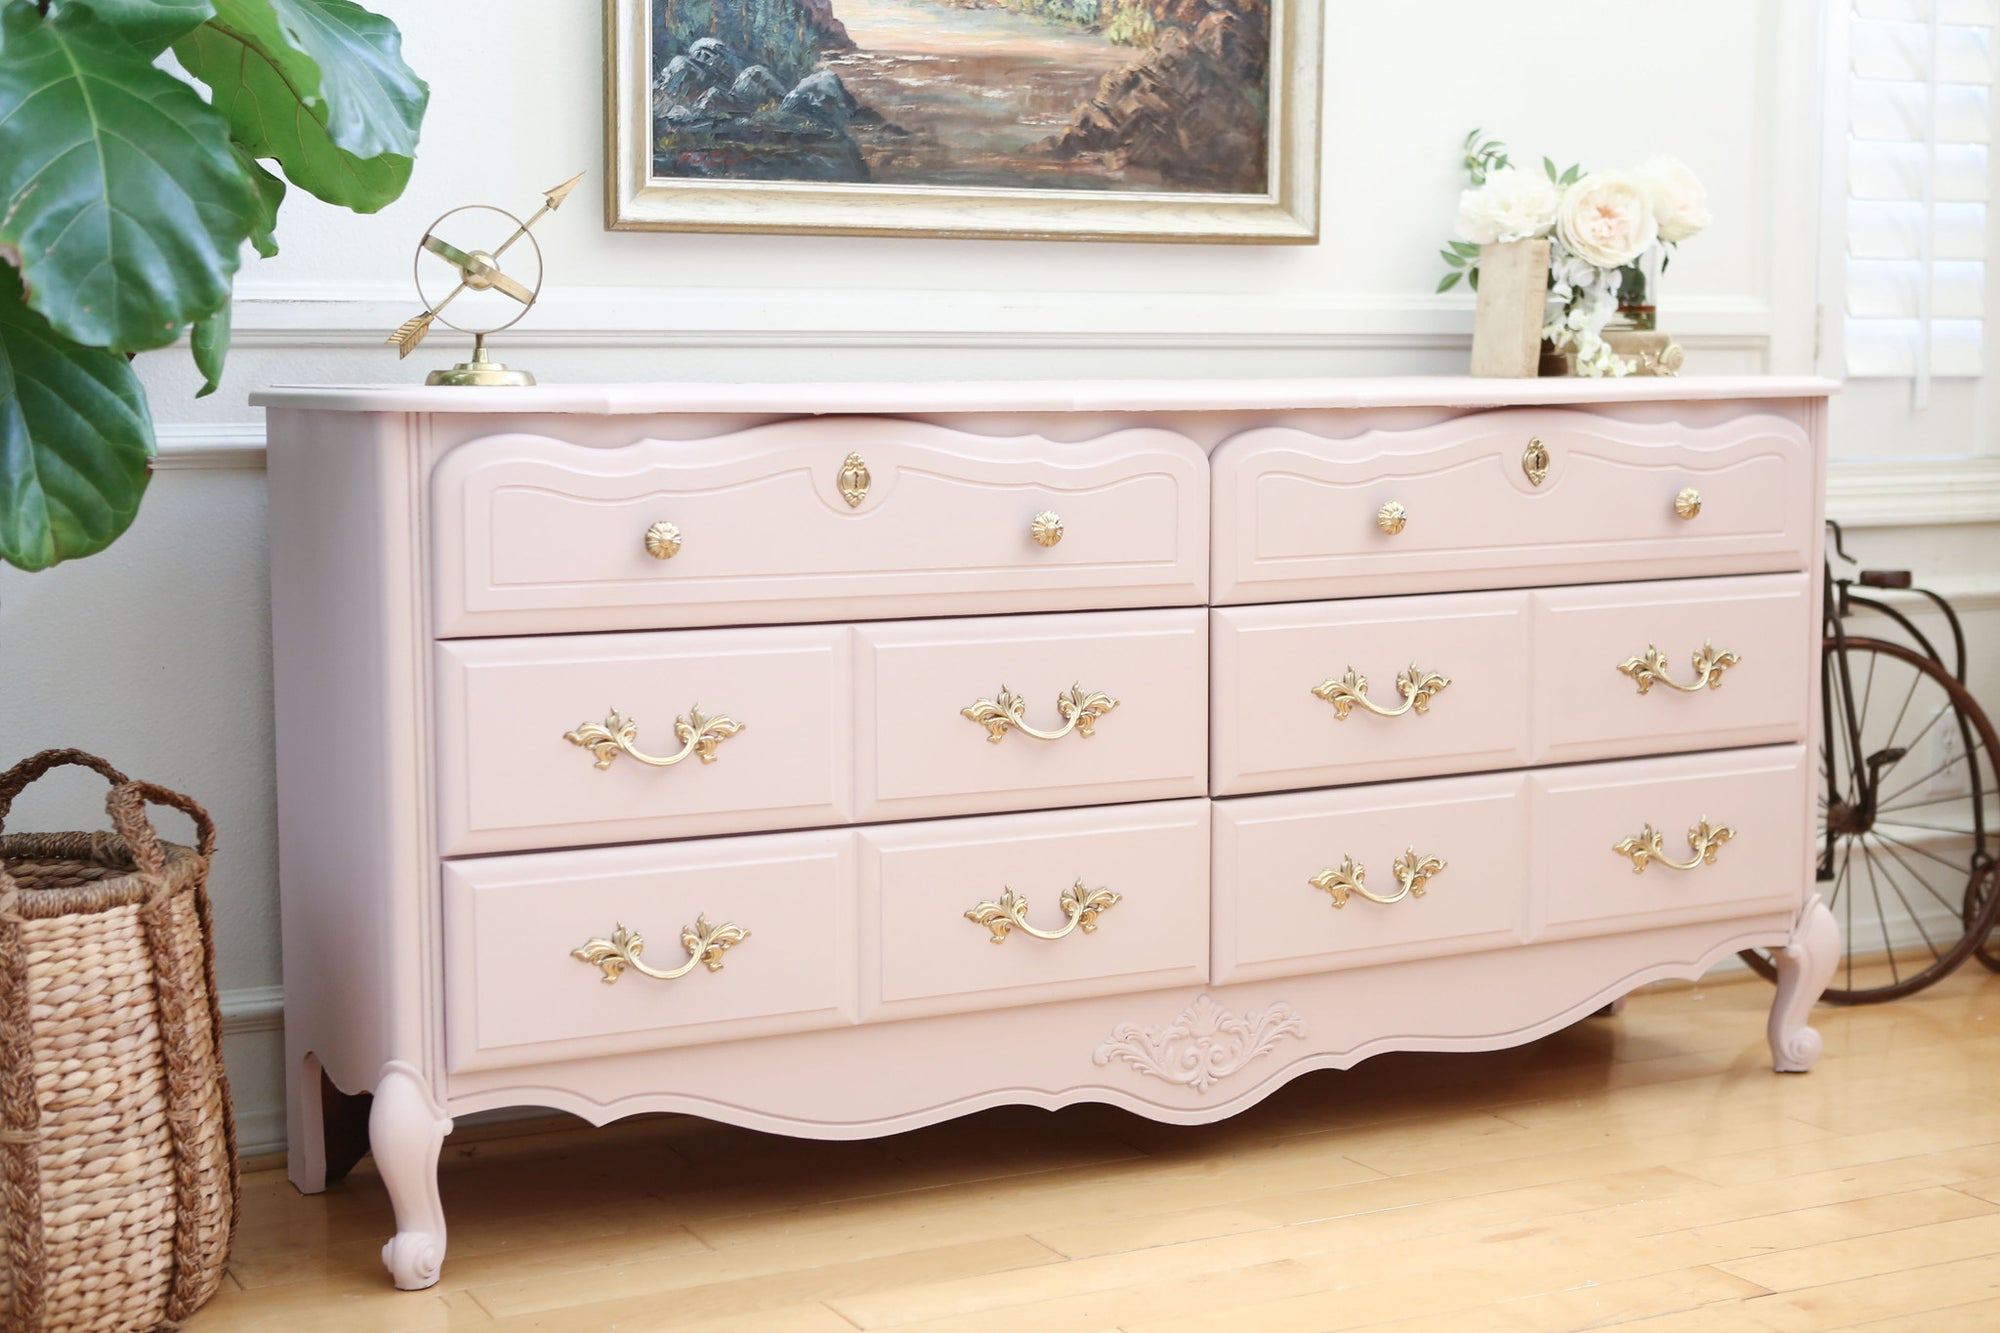 vintage shabby chic dresser credenza with 6 drawers in baby pink rh shopgoldenpineapple com  pink shabby chic bedroom furniture